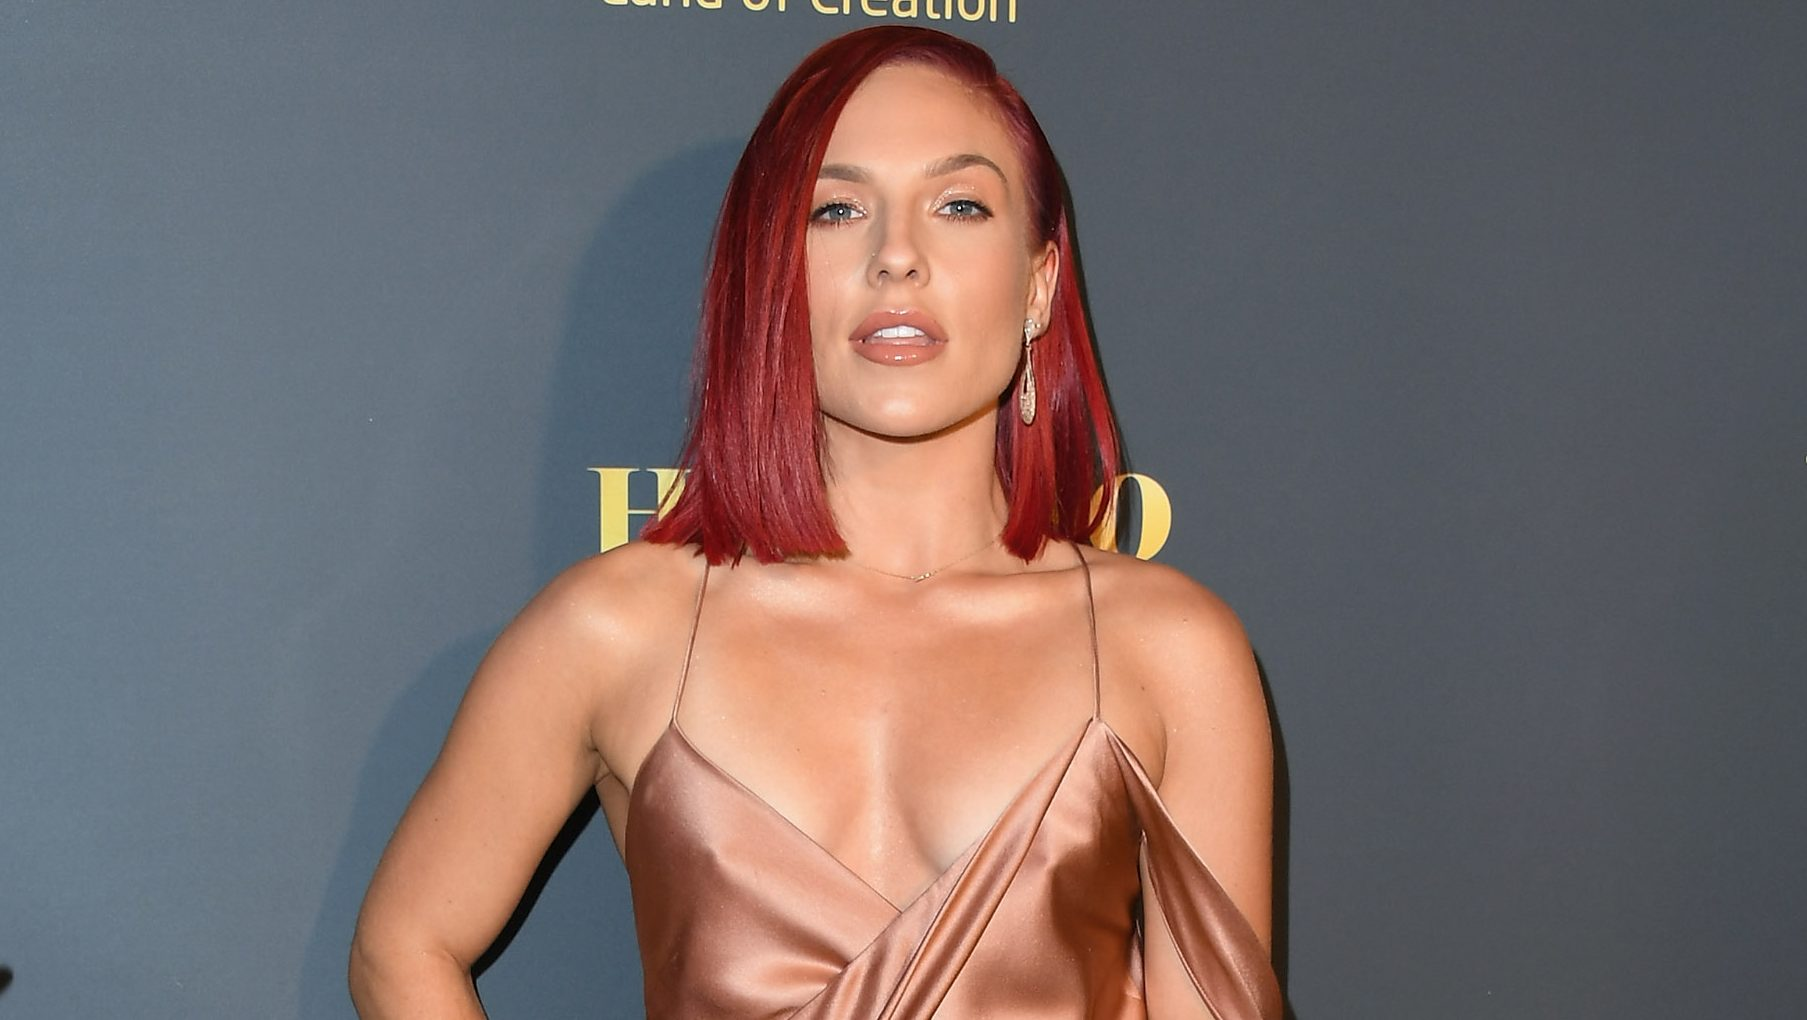 Does Sharna Burgess Have a Boyfriend? Is She Dating Anyone? | Heavy.com